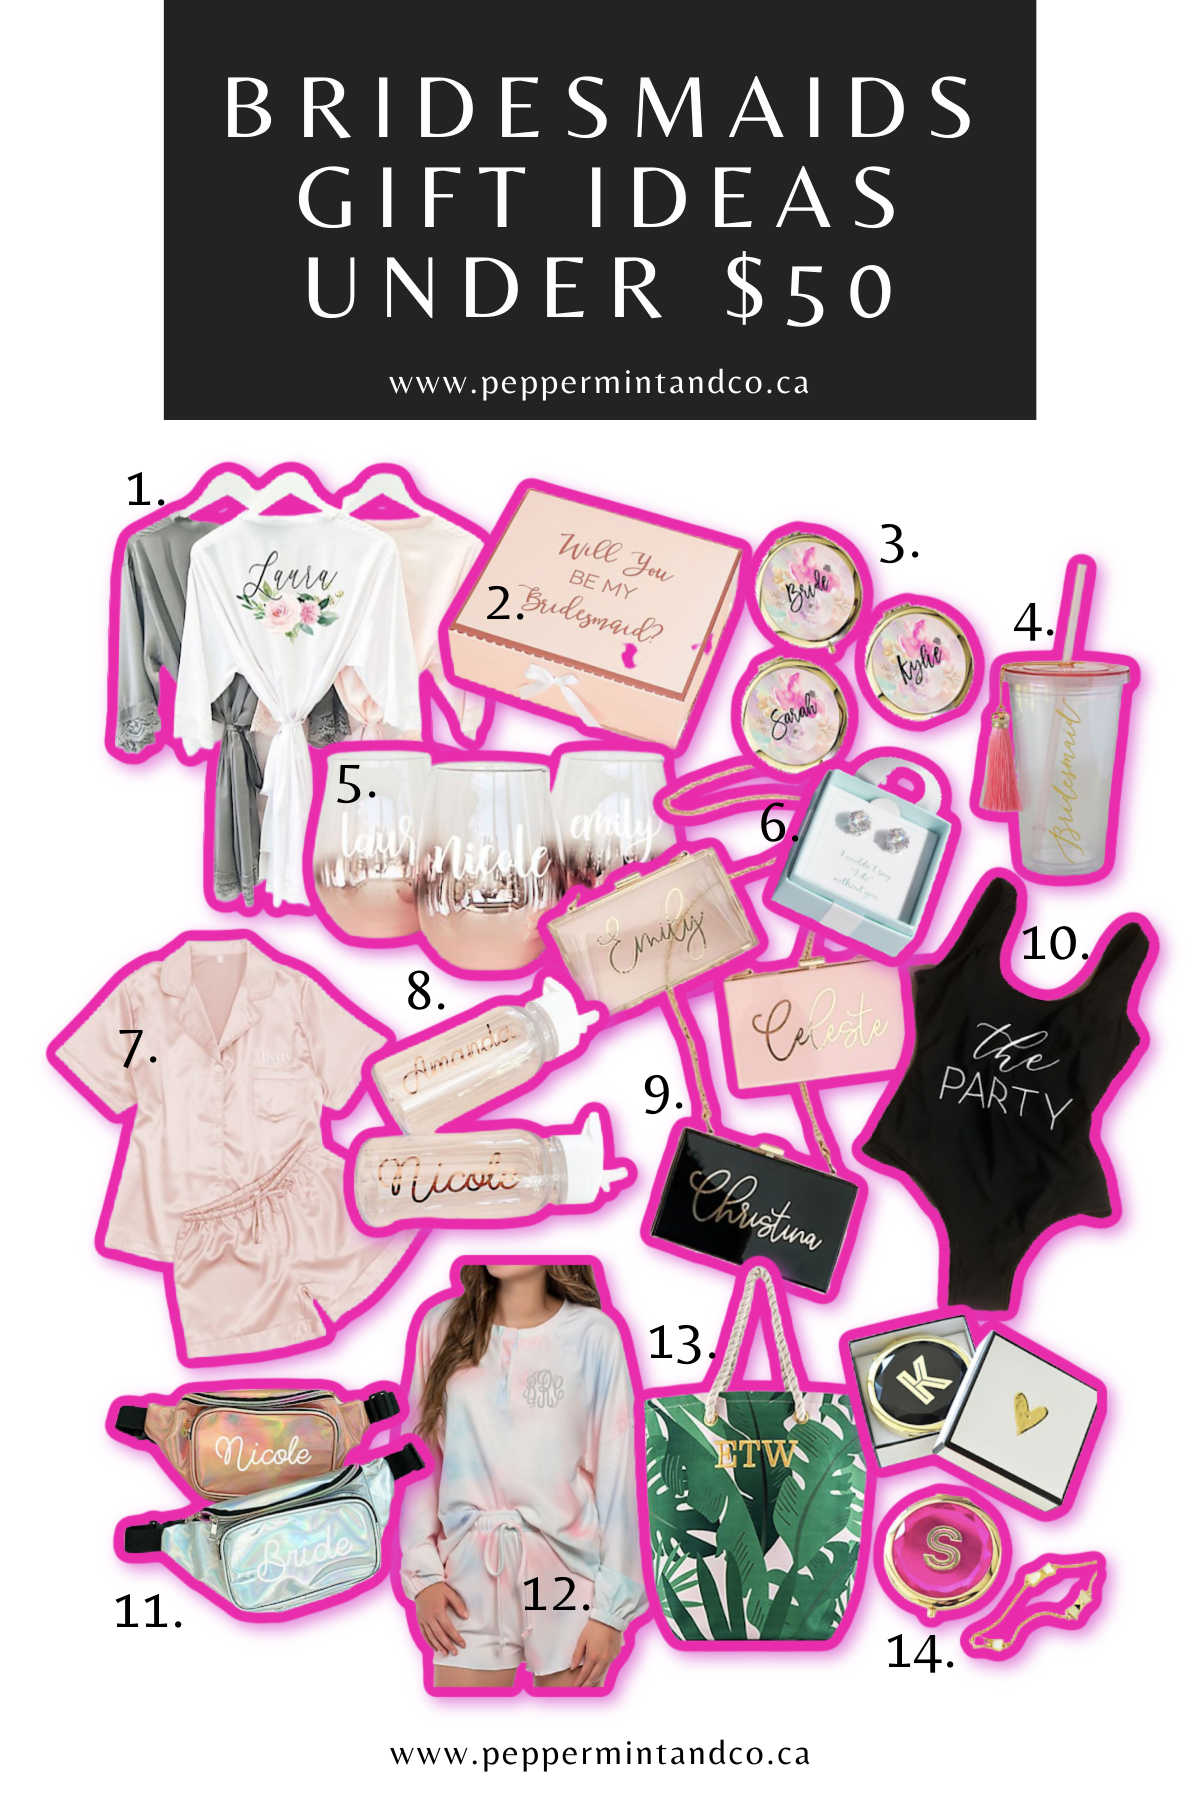 Bridesmaids Gift Ideas Under $50